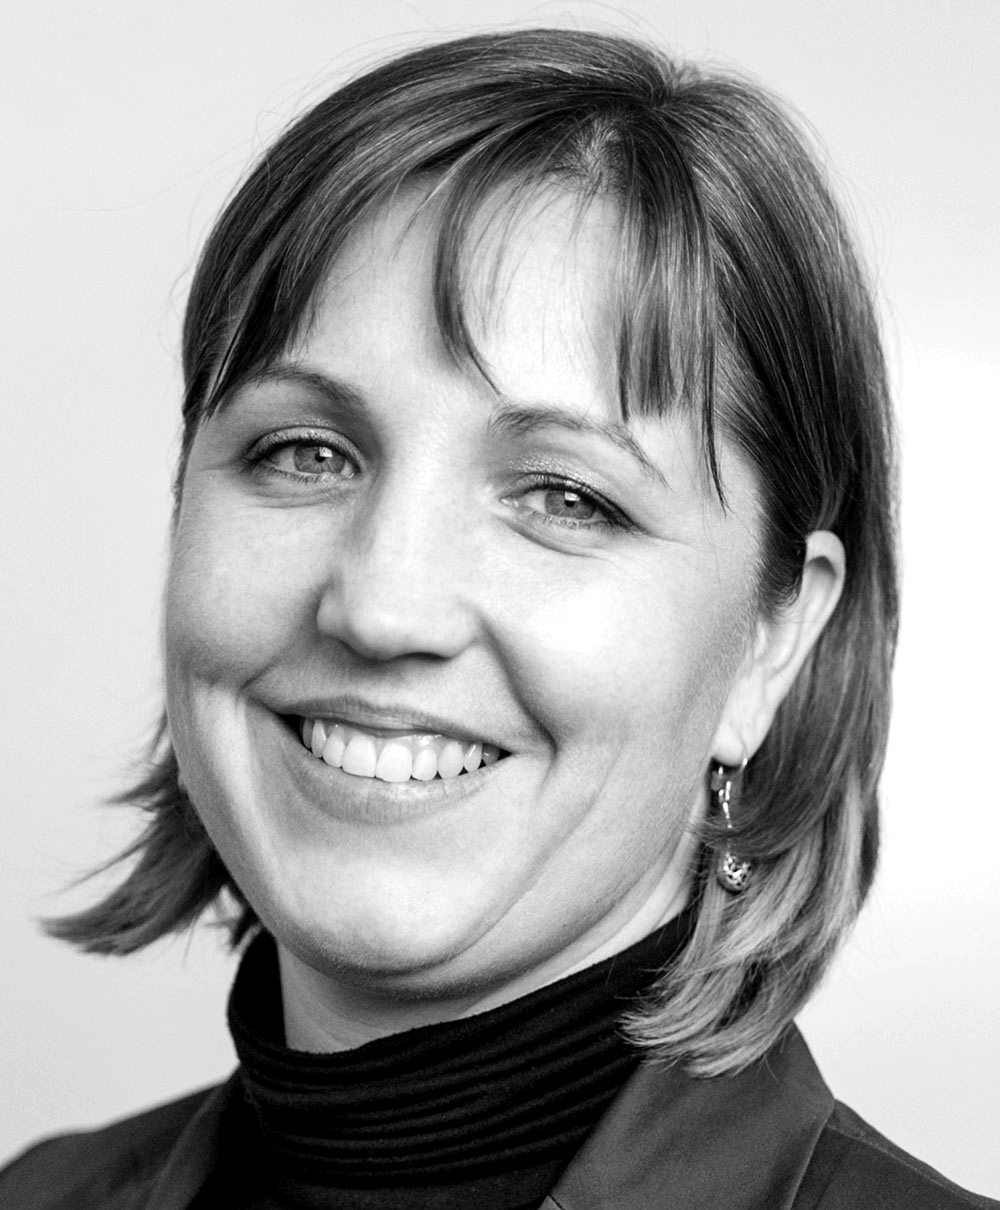 Headshot of Jennifer Moore